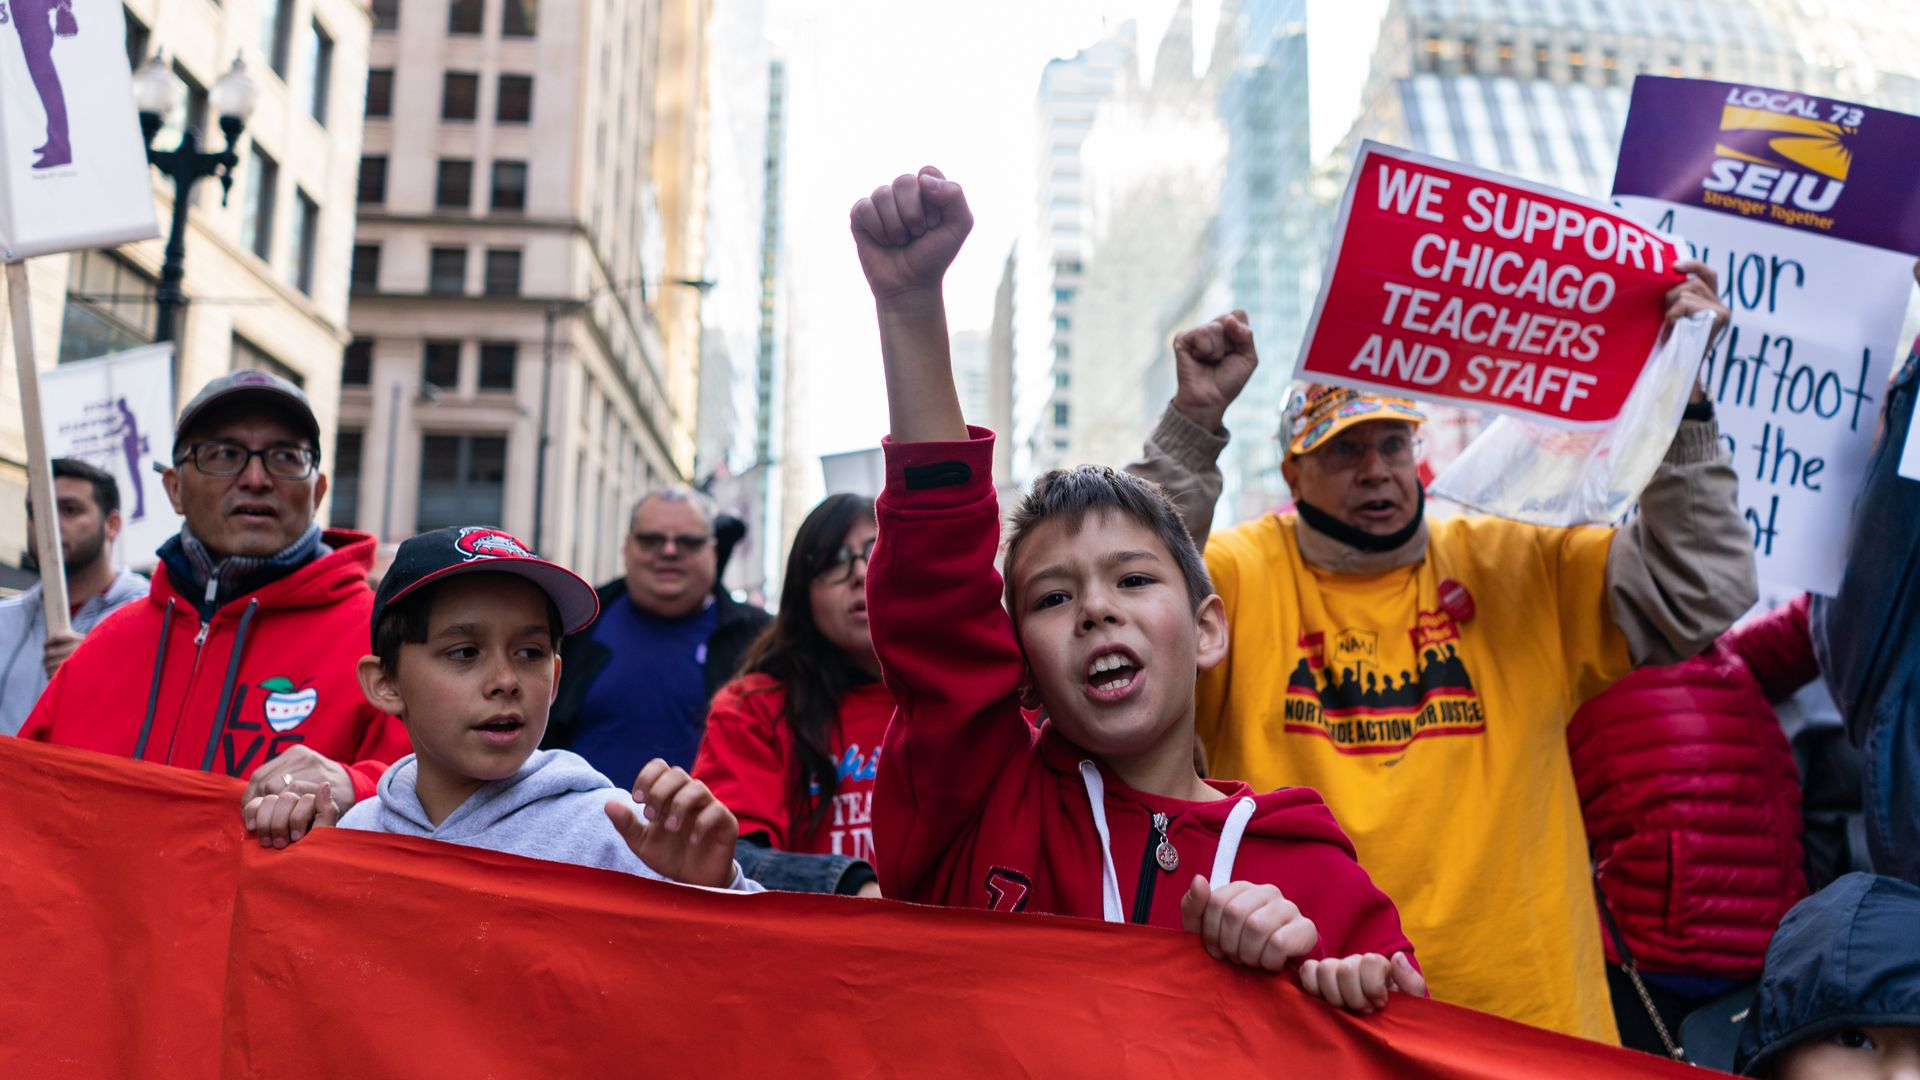 Protesters gather to support Chicago teachers